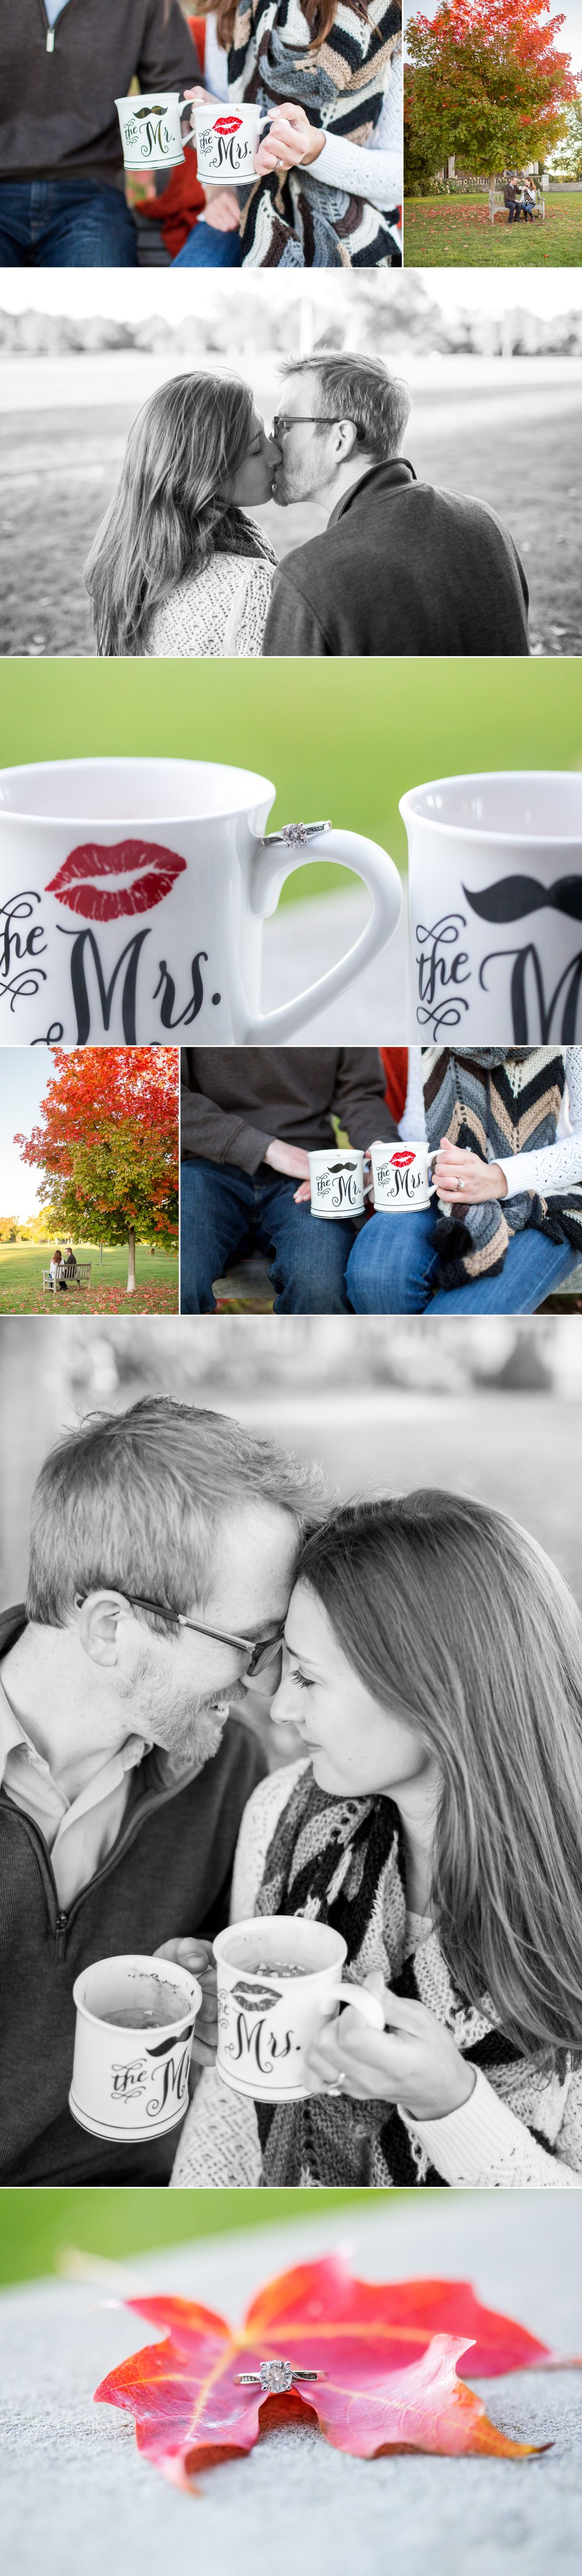 New Canaan, CT Engagement Session at Waveny Park | CT, NYC + Destination Luxury Wedding + Engagement Photographer